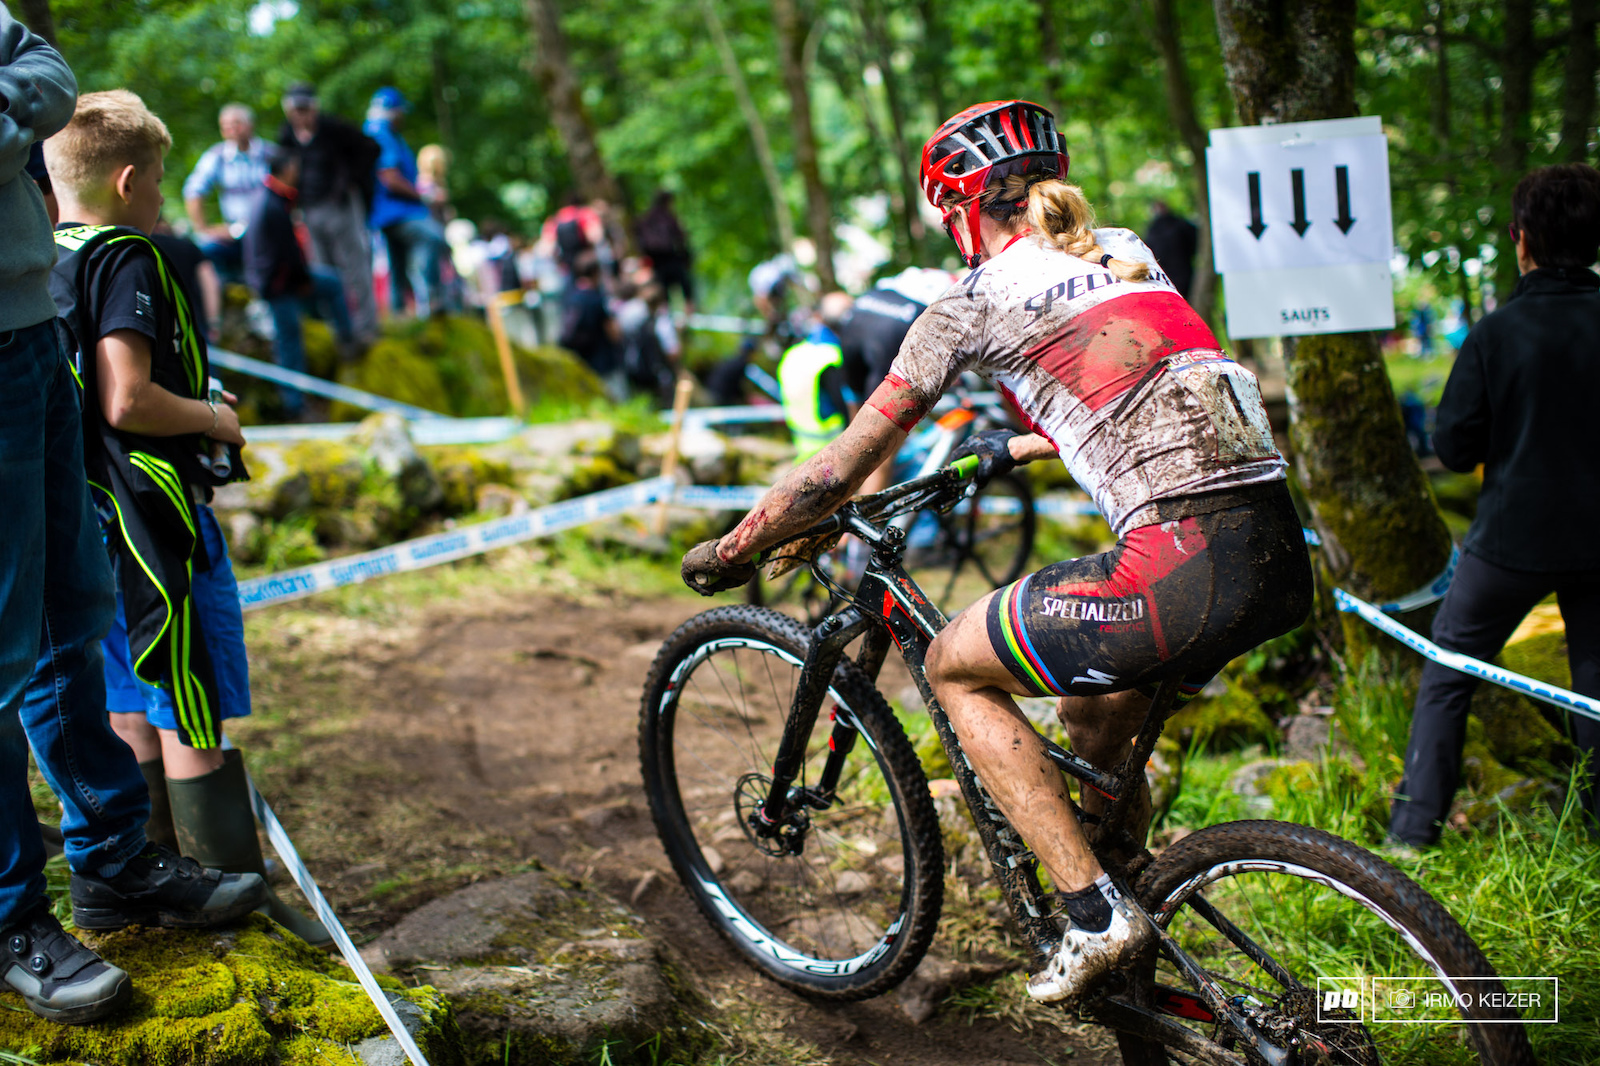 Battle wounds on Annika Langvad. The Danish lady struggled with the course in La Bresse but managed to cling on to the lead in the World Cup.